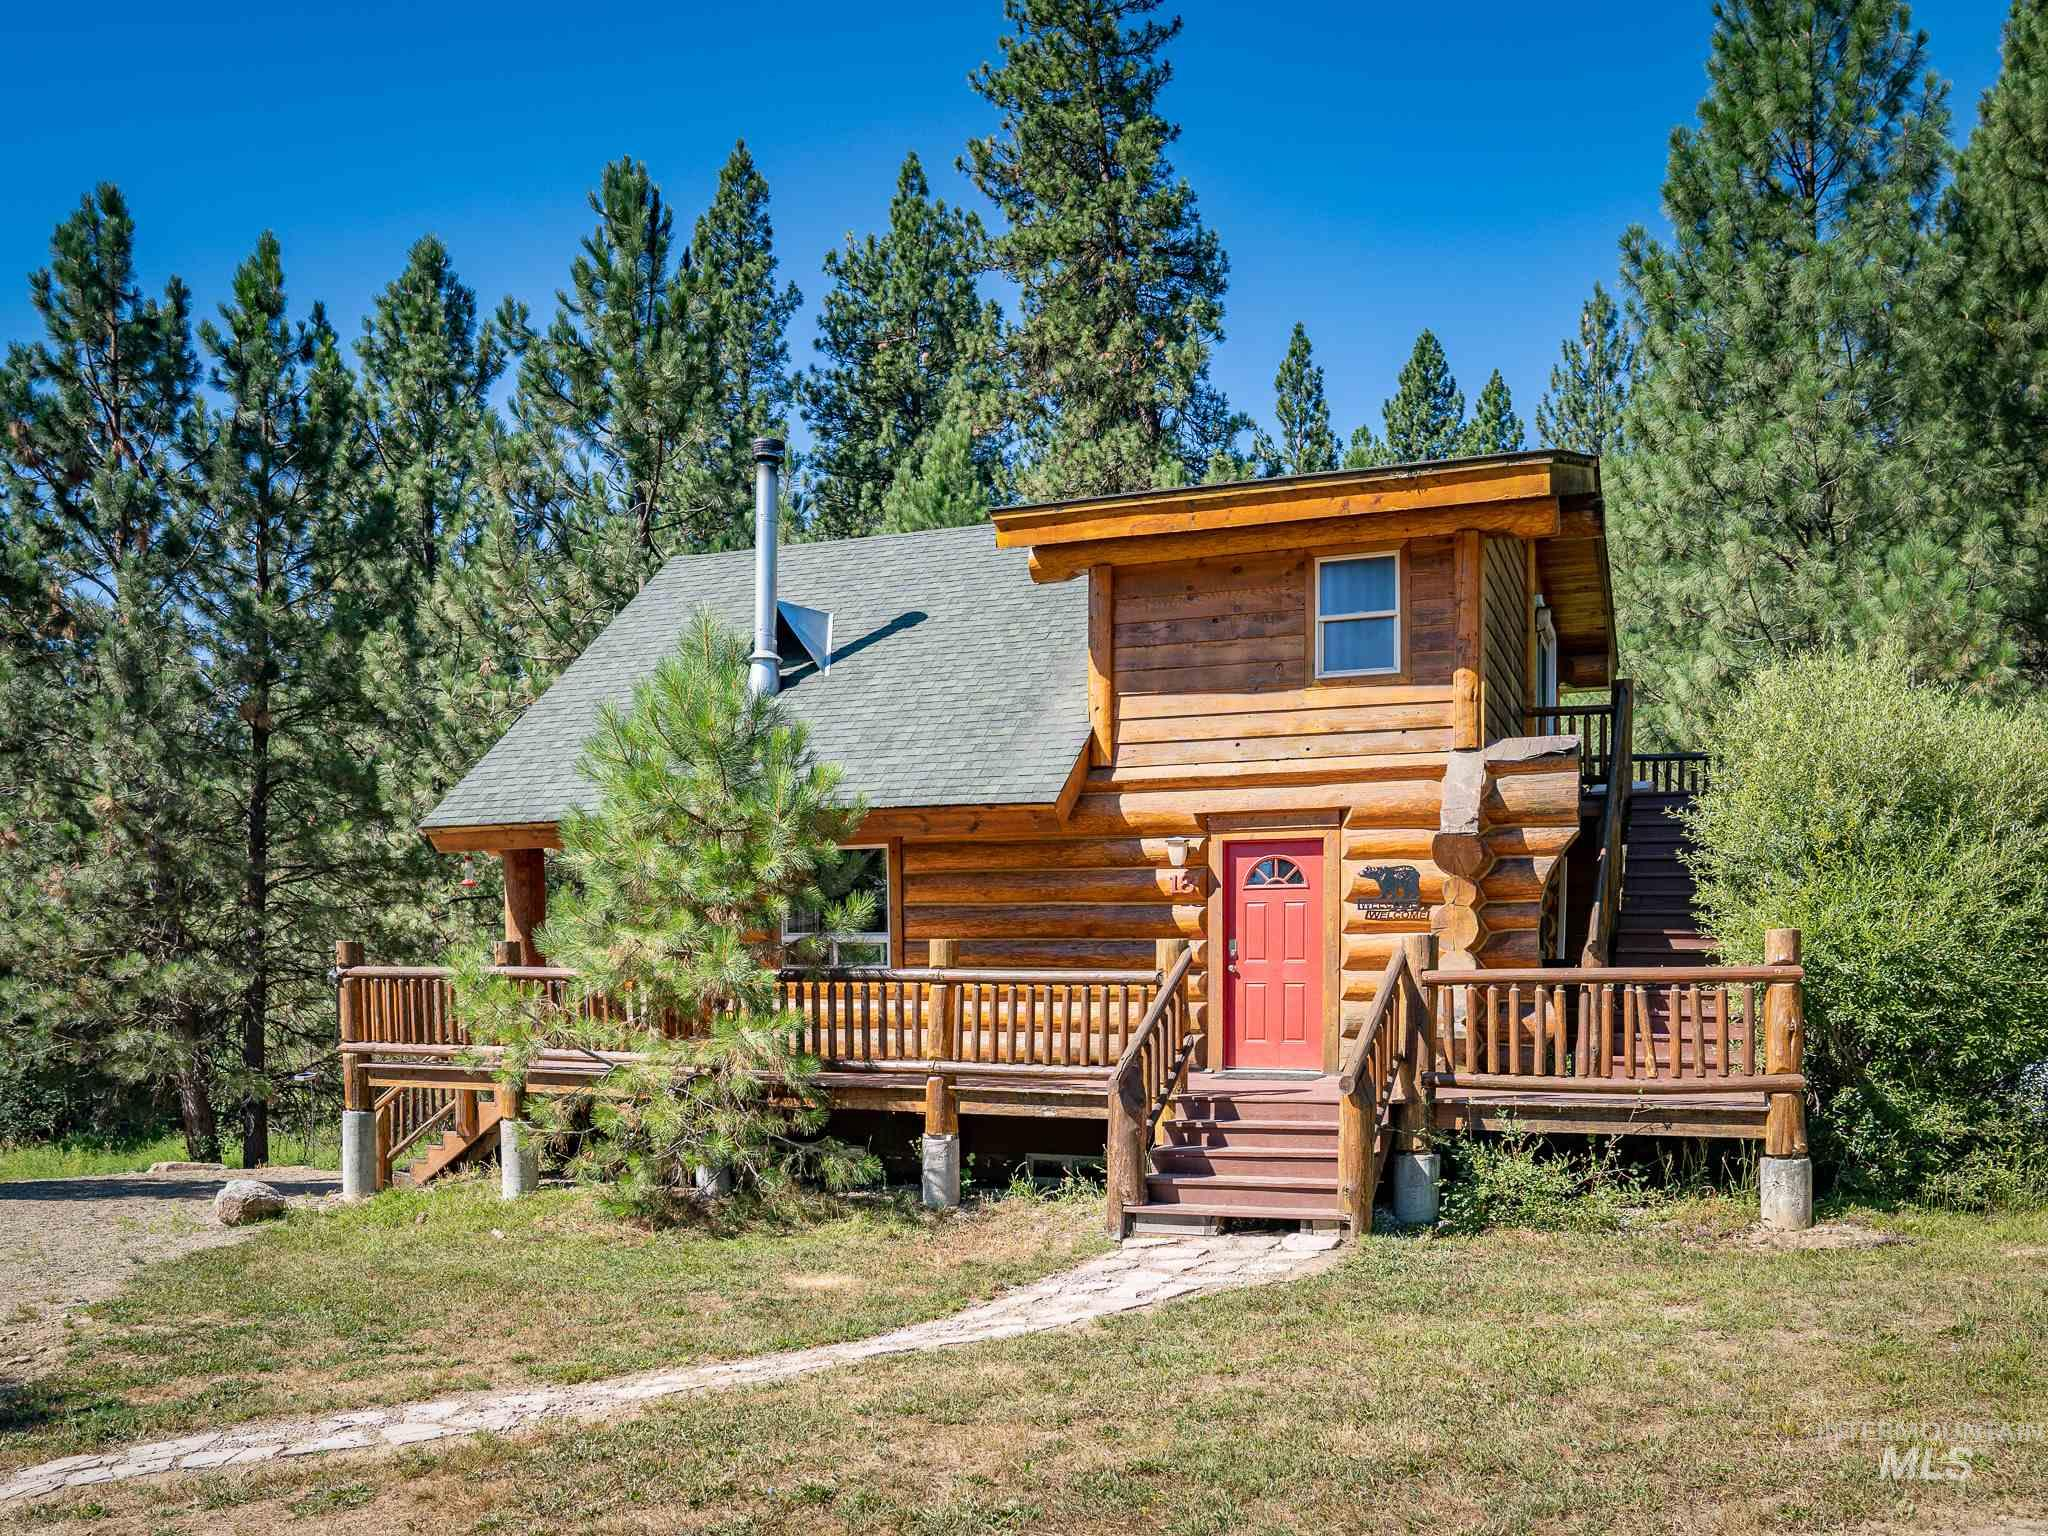 TBD Lot 3 Blk 5 Meadowcreek Subdivision, New Meadows, Idaho 83654, 3 Bedrooms, 3.5 Bathrooms, Residential For Sale, Price $425,000, 98775826